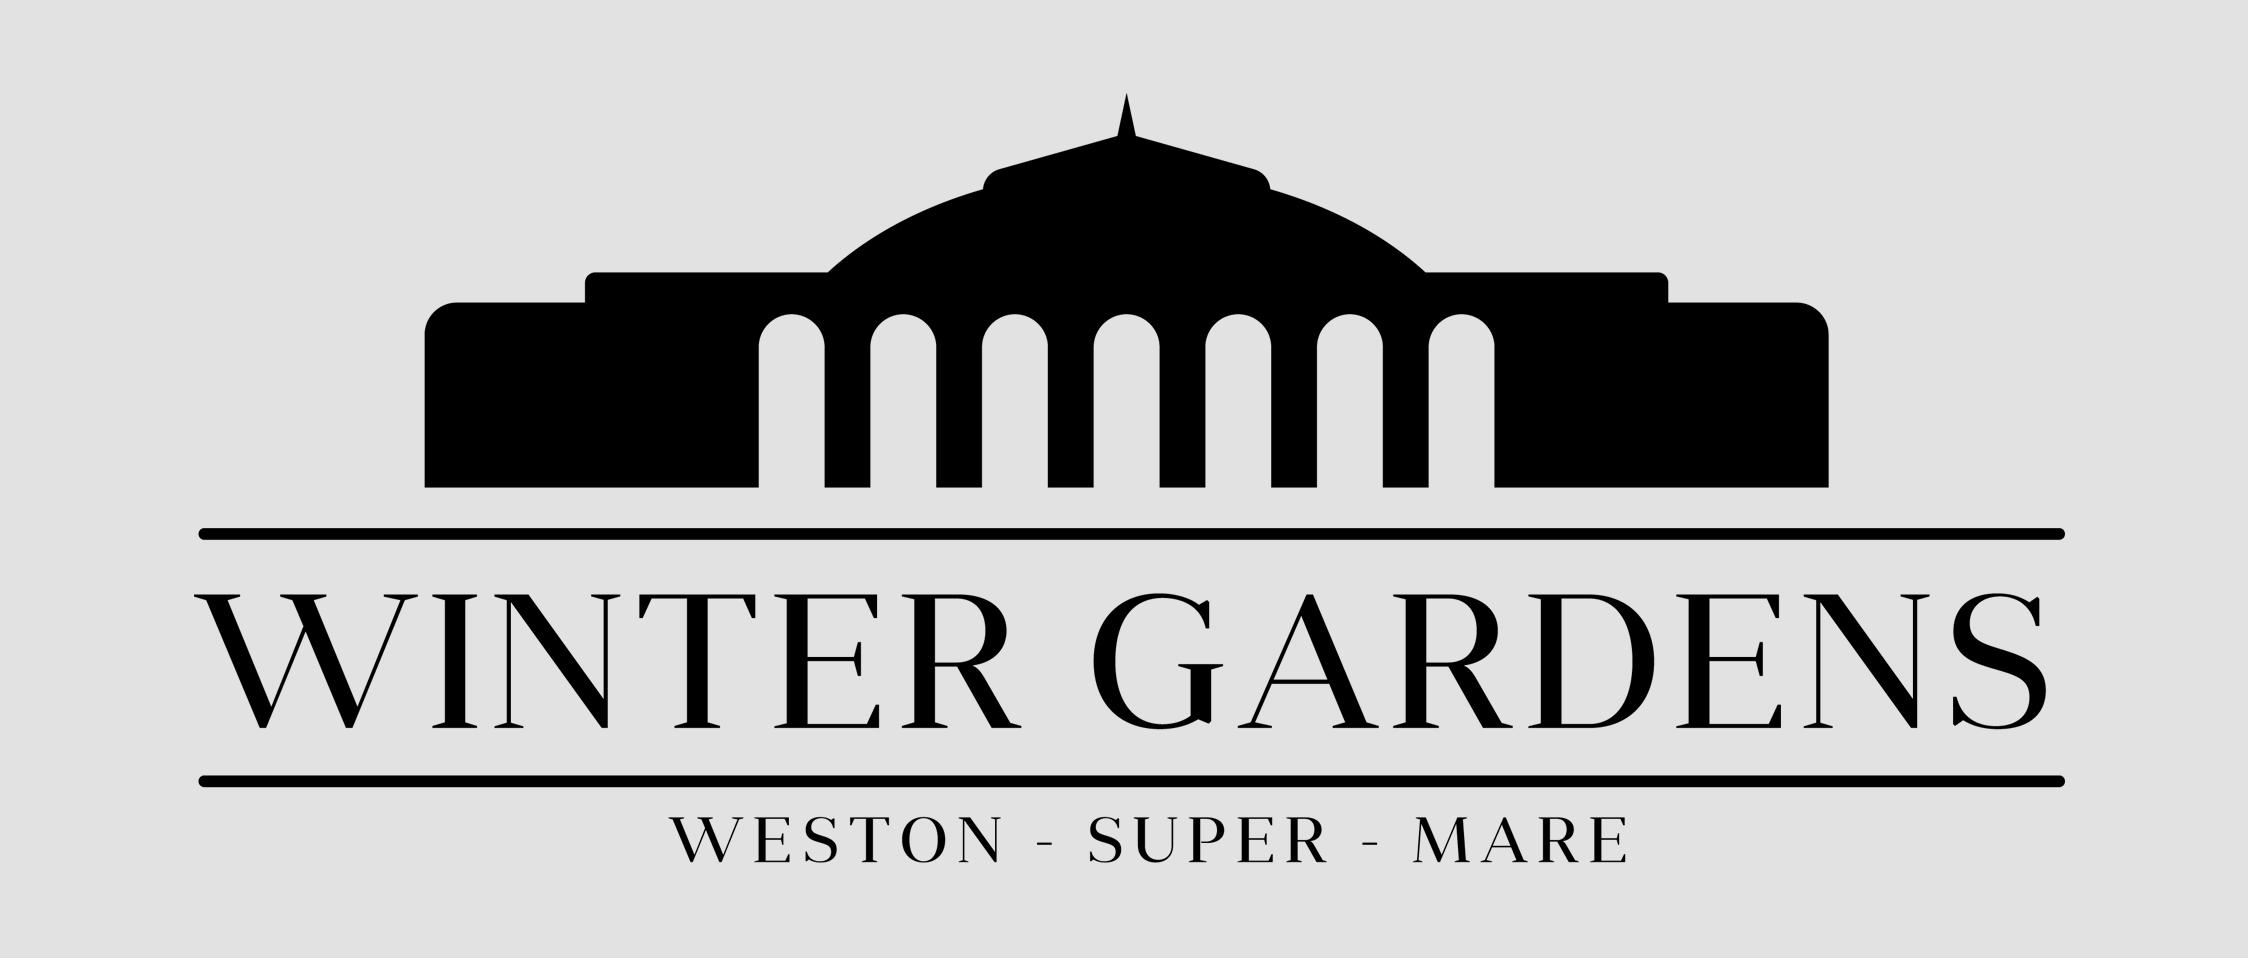 winter gardens recruitment event lauriston hotel weston super